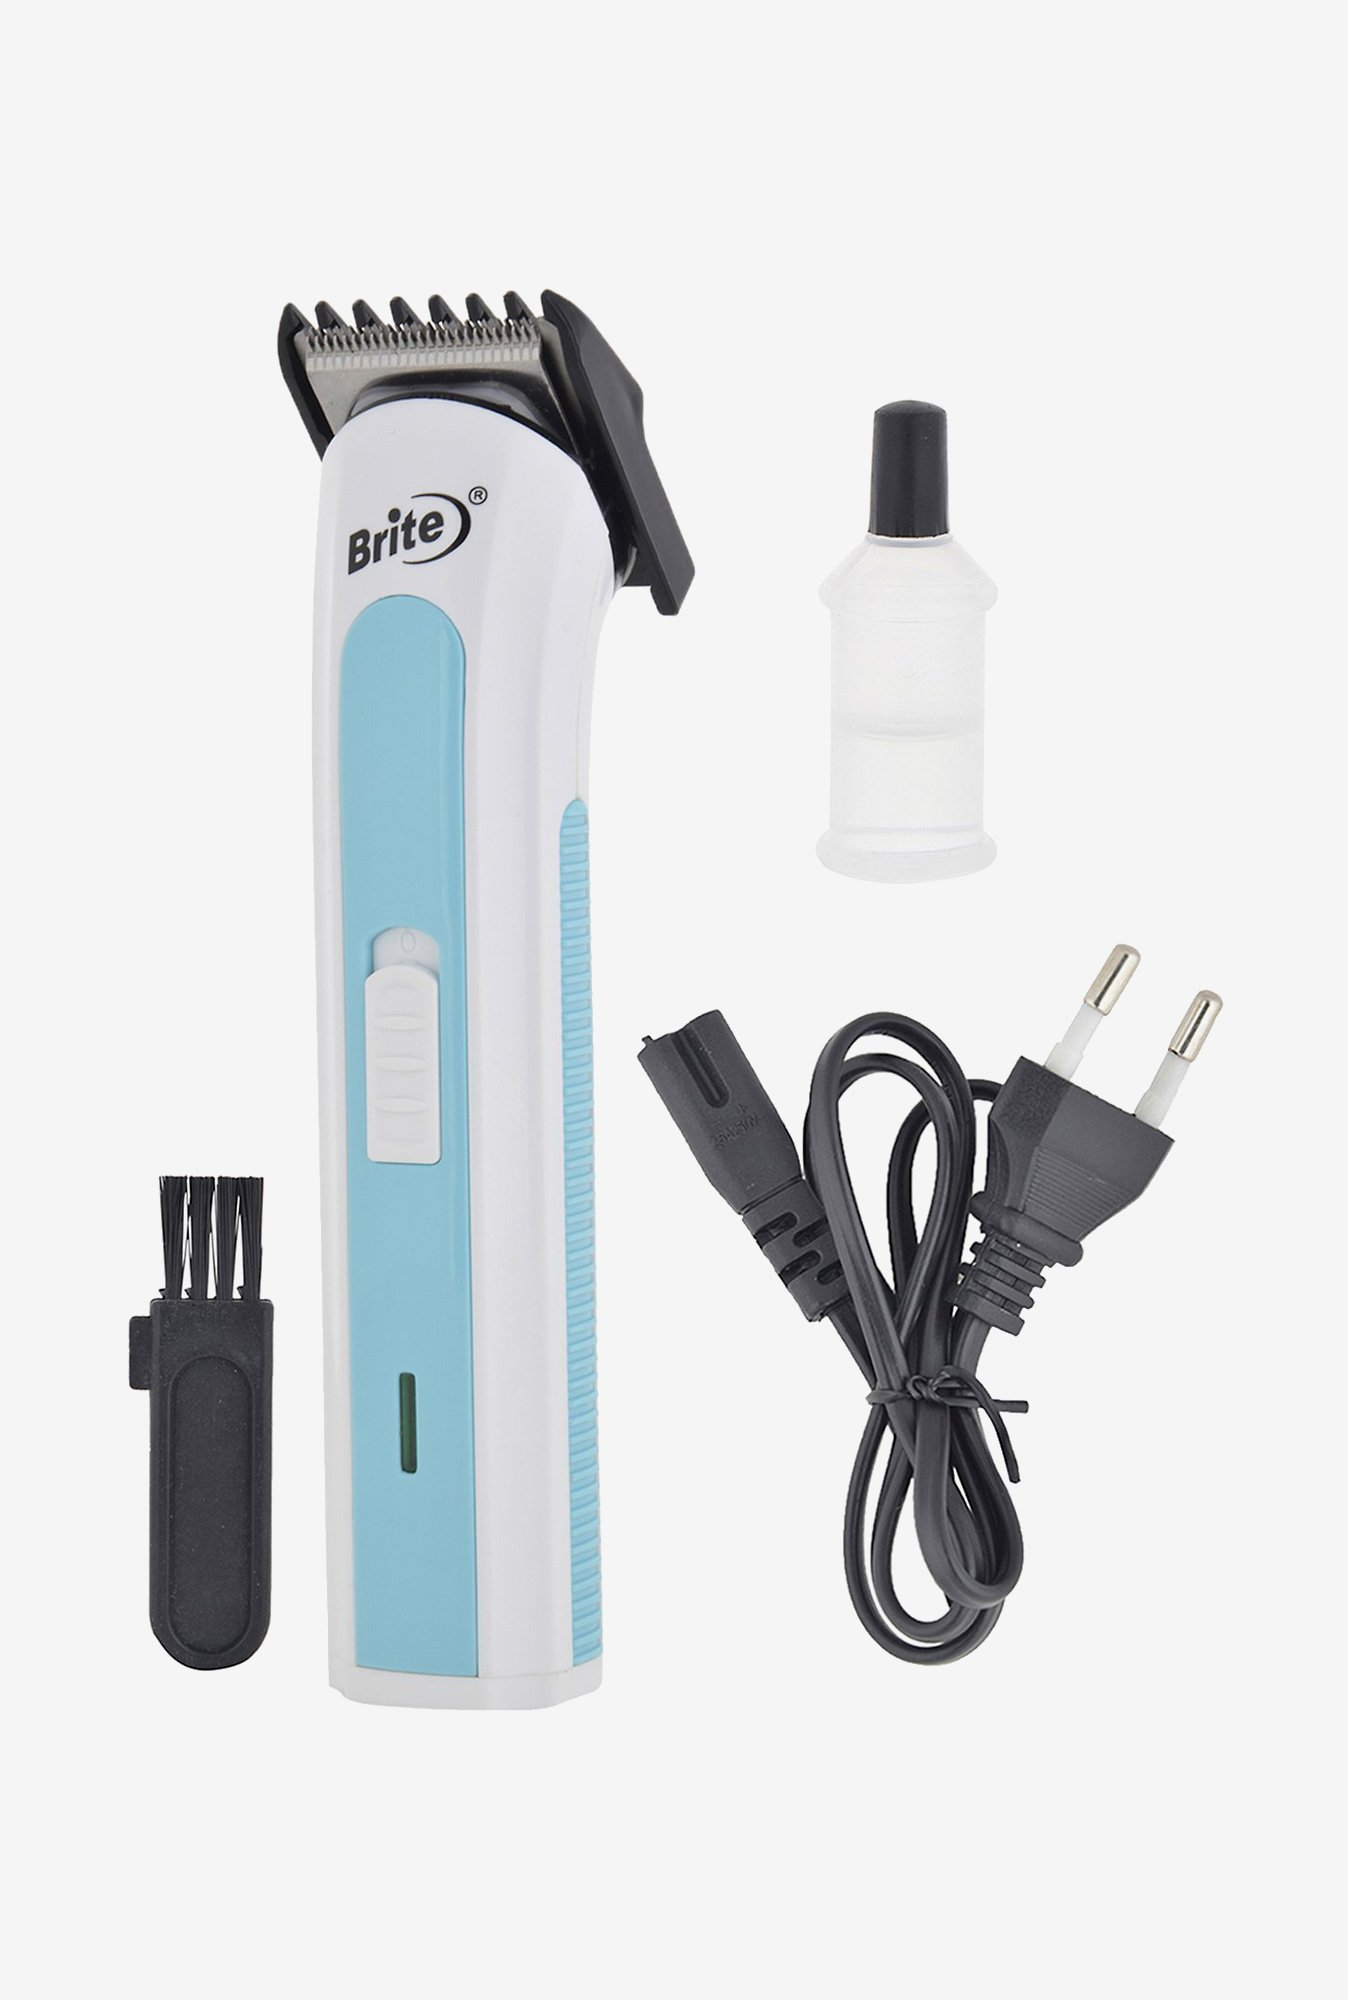 Brite BHT-502 Trimmer for Unisex (White & Blue)